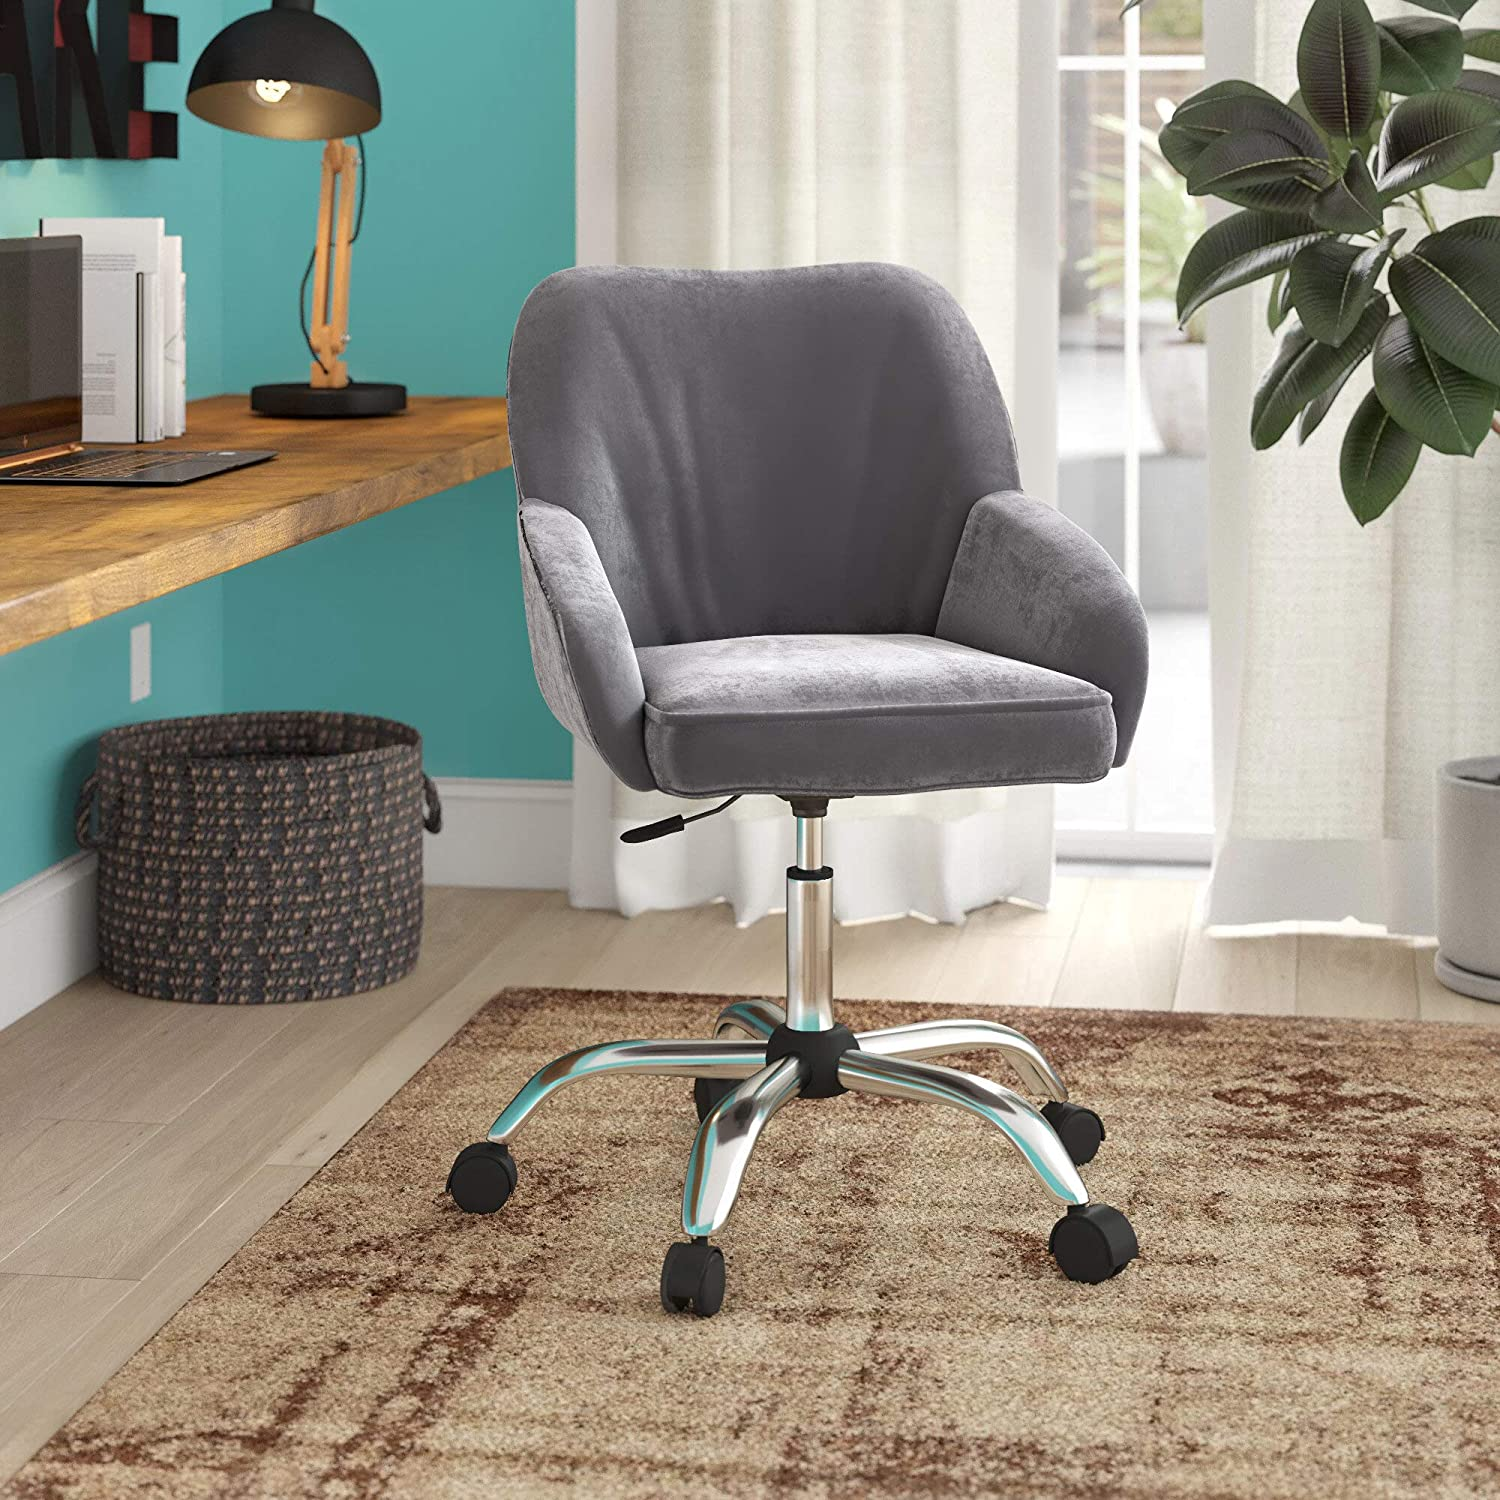 BELLEZE Upholstered Thick Padded Velvet Seat & Back w/Built-in Lumbar Support Office Task Chair, Charcoal